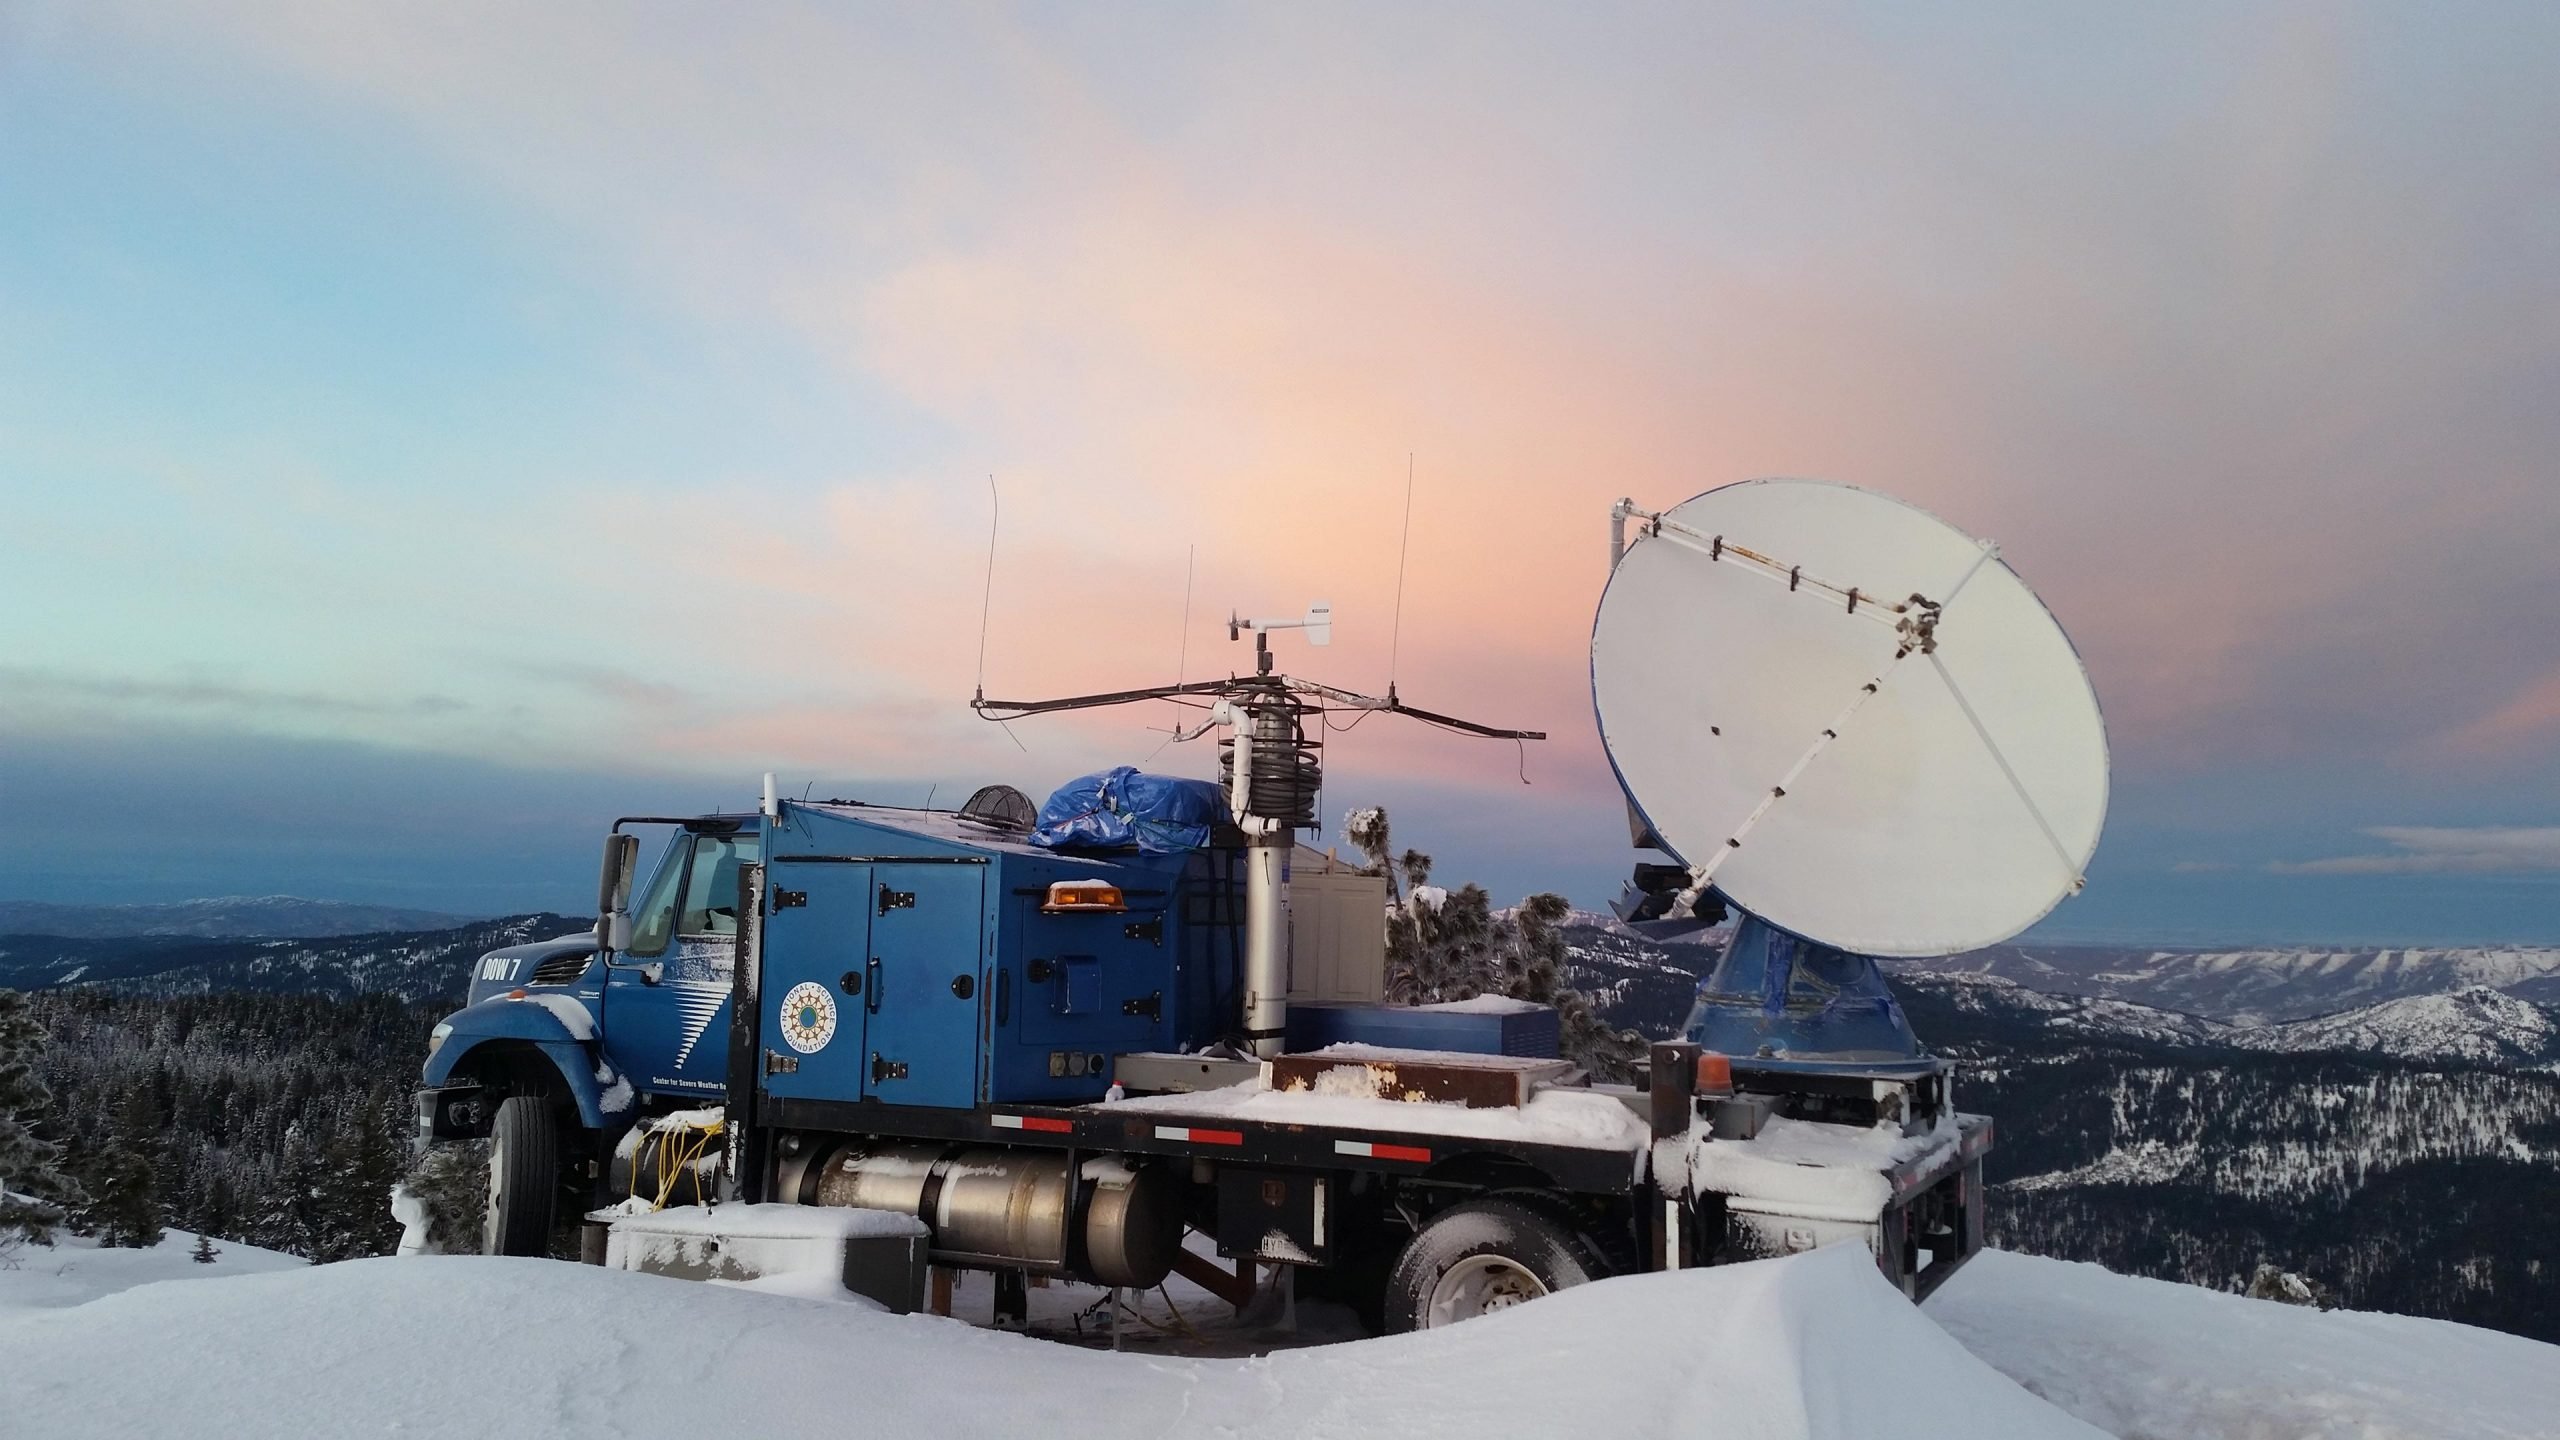 Researchers Seed Clouds to Produce Snowfall – Radar Used to Accurately Measure Results - SciTechDaily